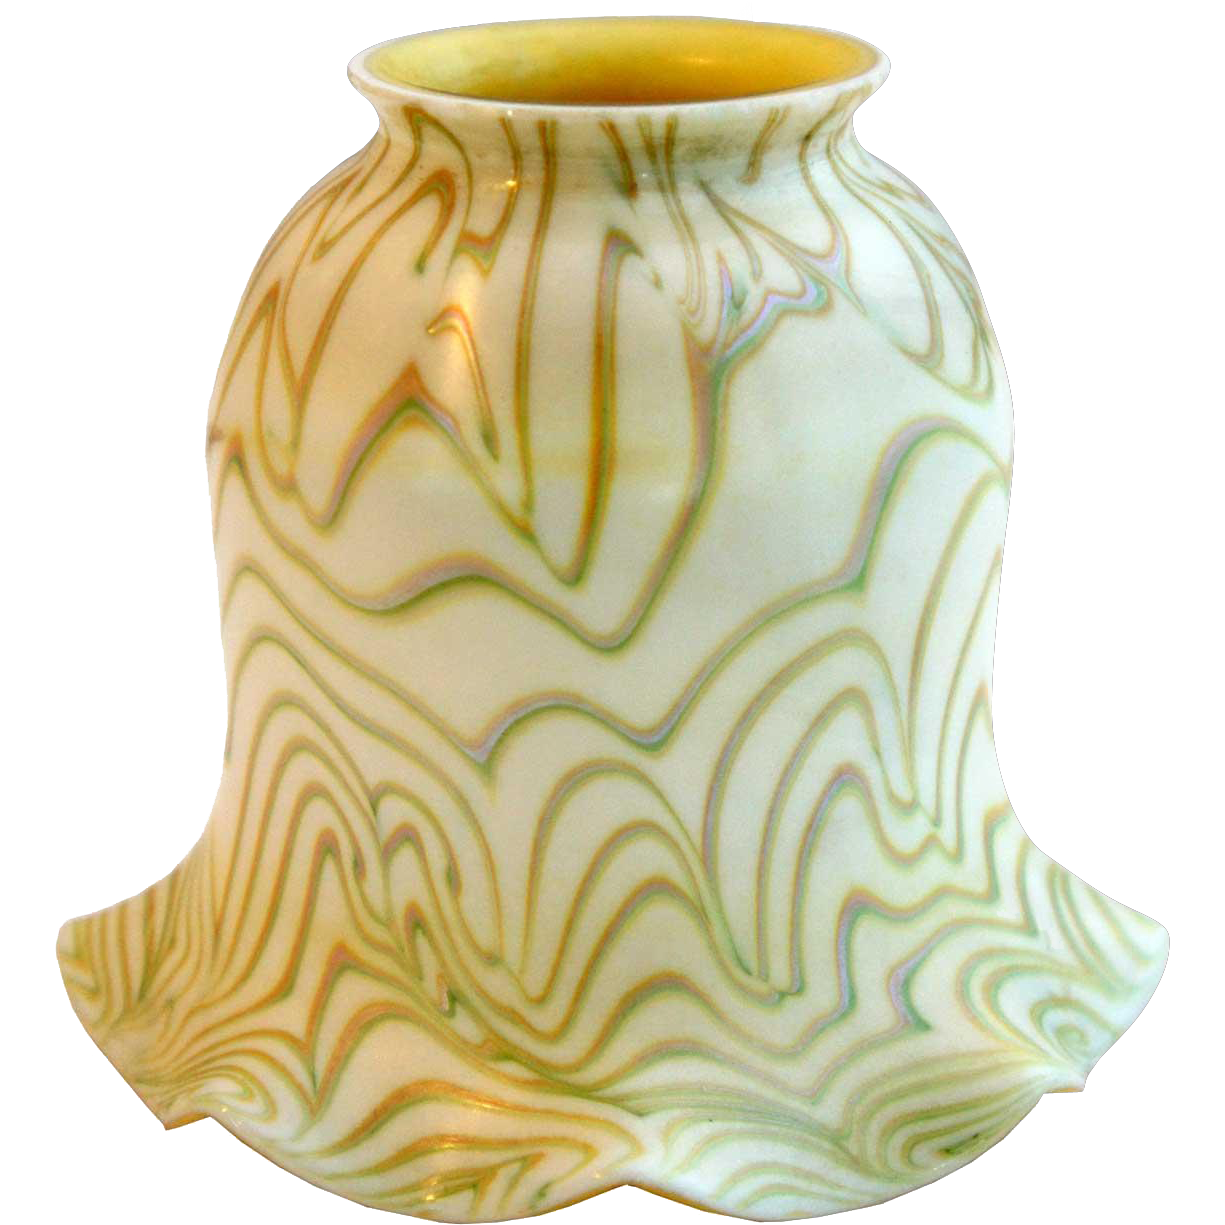 American Steuben Carder Period Art Glass Gold Lamp Shade